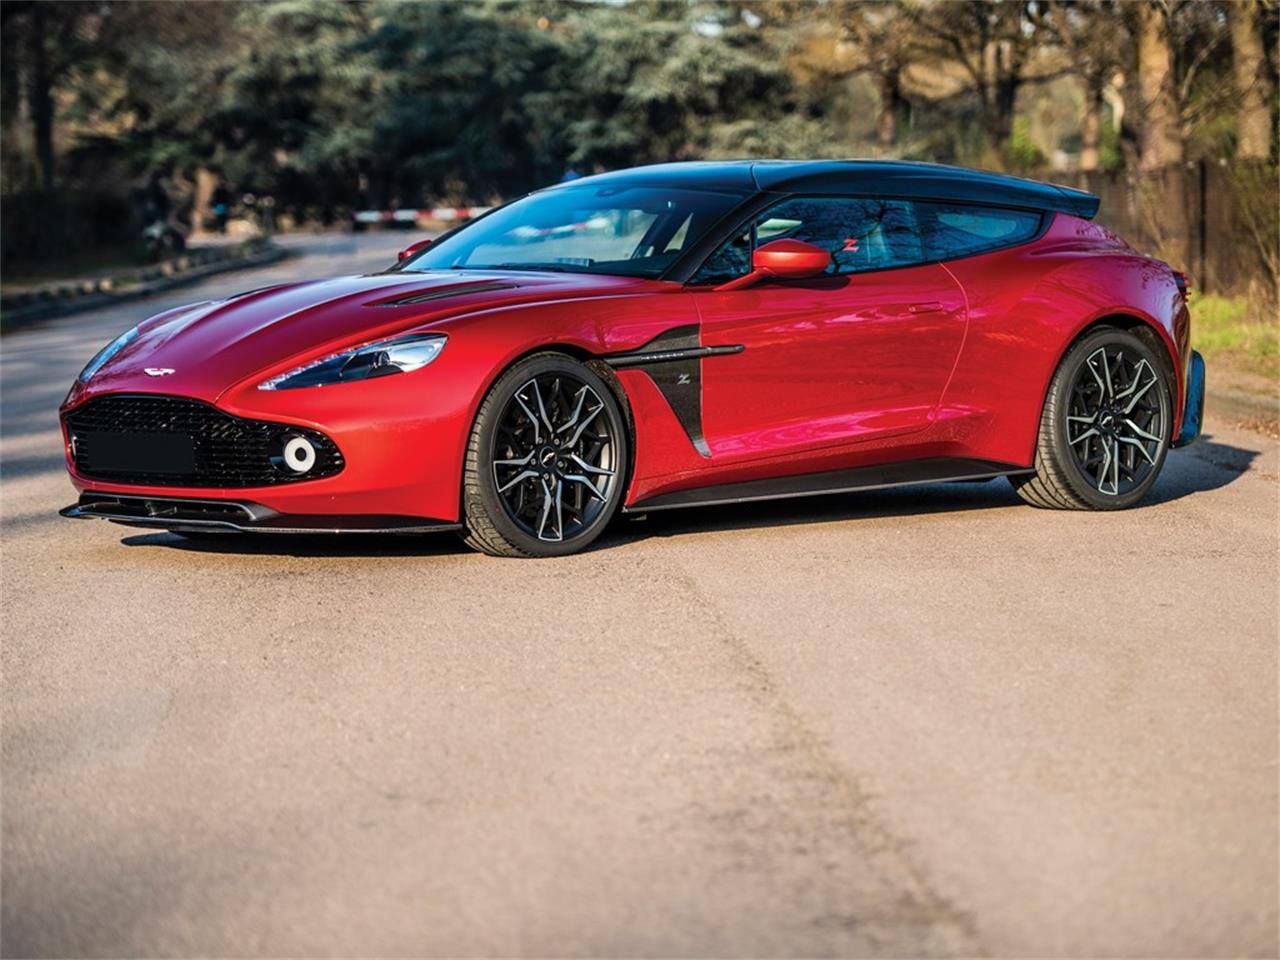 2019 Aston Martin Vanquish for sale in Cernobbio, Other